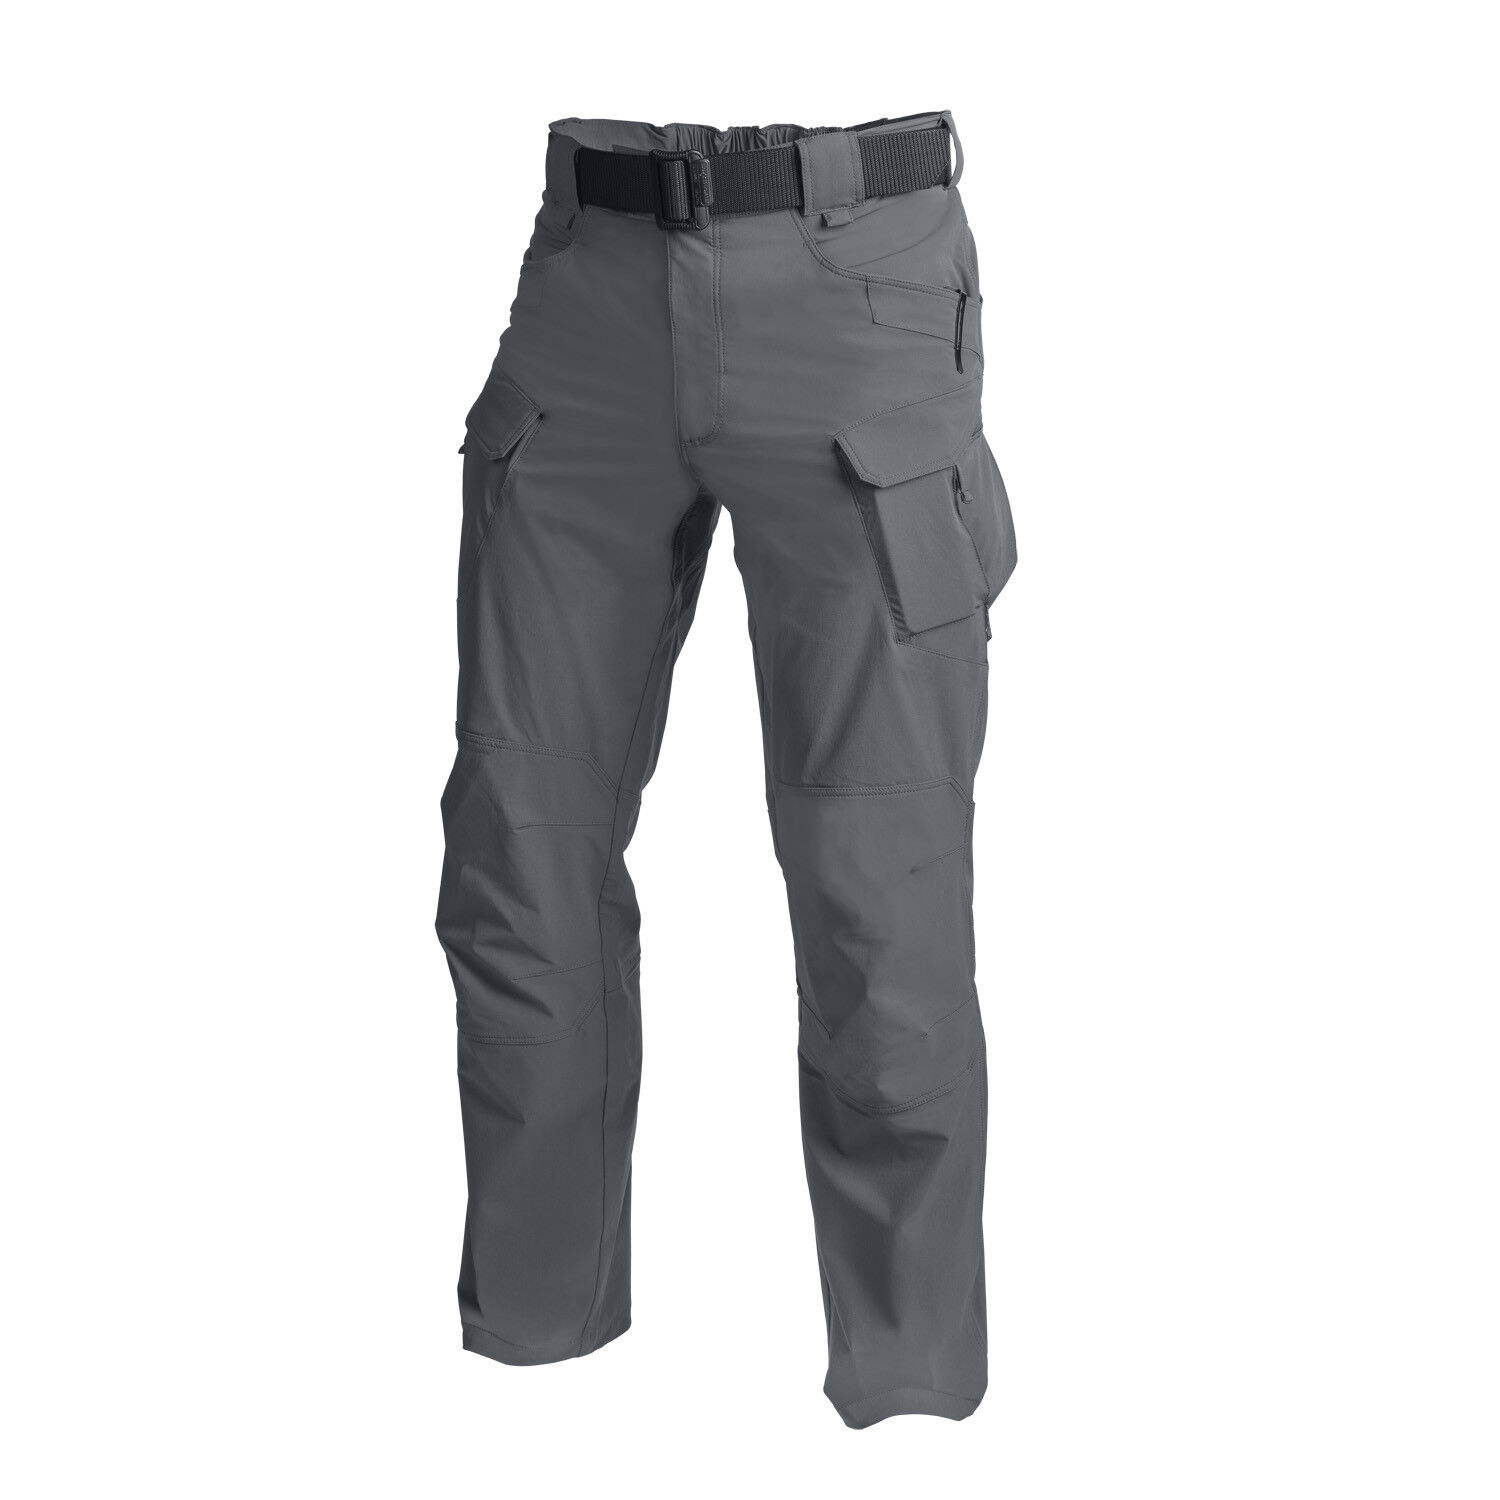 HELIKON TEX OTP TACTICAL OUTDOOR PANTS Hose Shadow Grau XLL XLarge Long